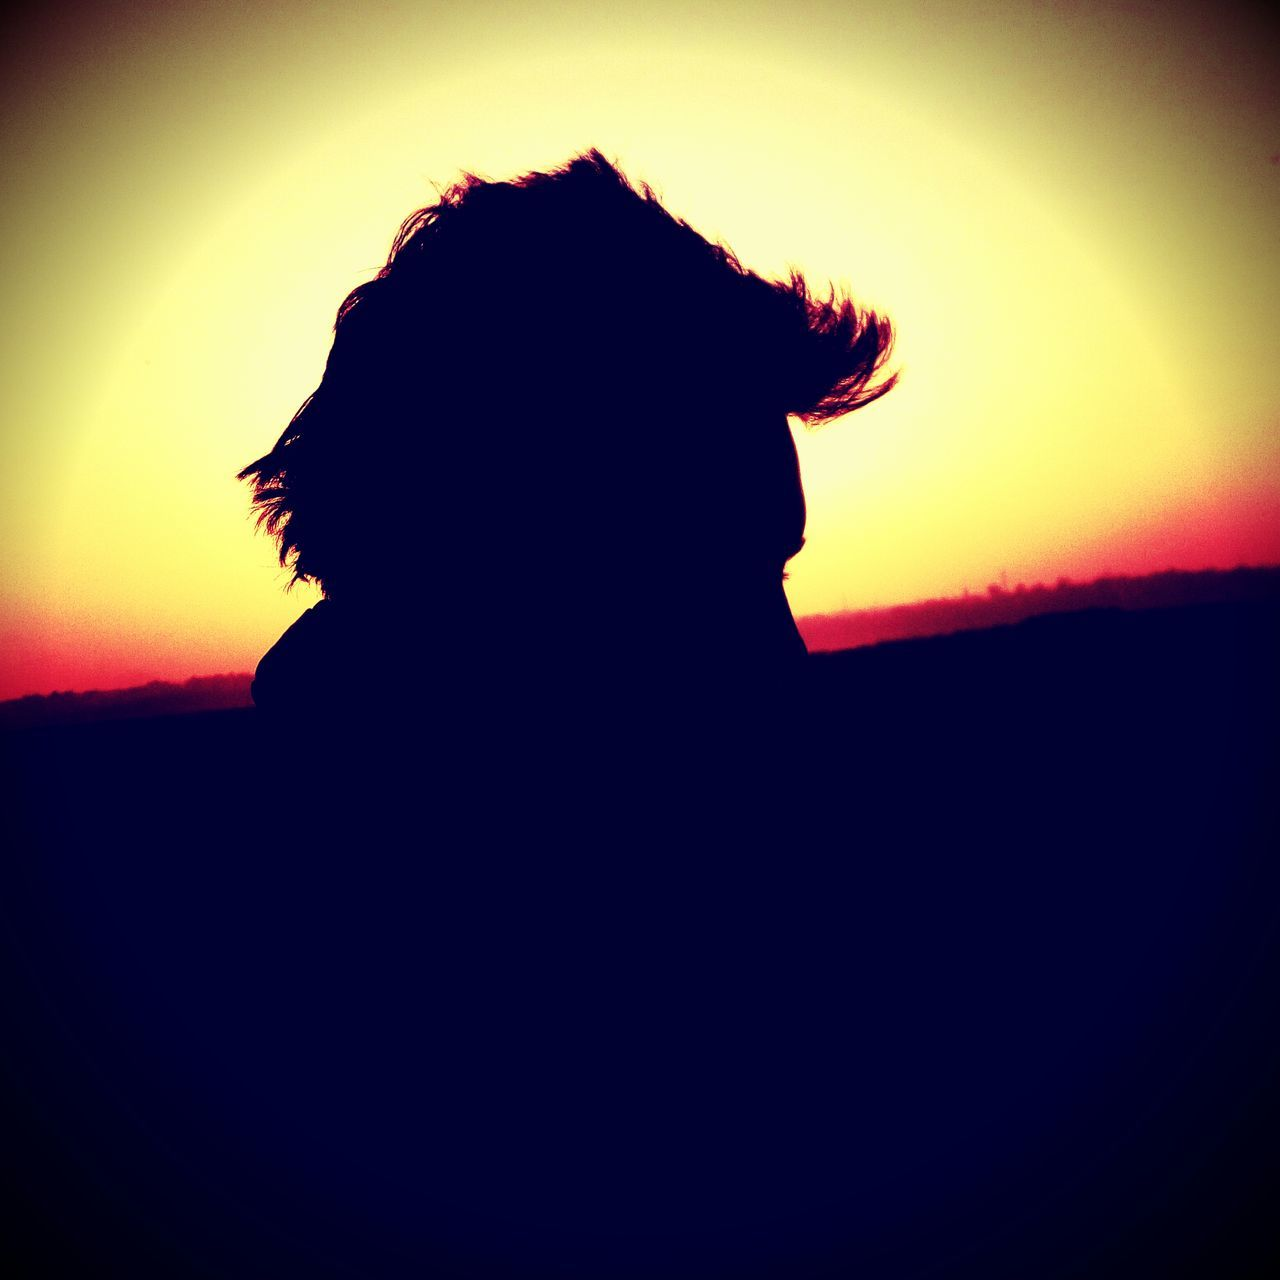 silhouette, sunset, nature, beauty in nature, sky, scenics, one person, real people, landscape, outdoors, clear sky, men, people